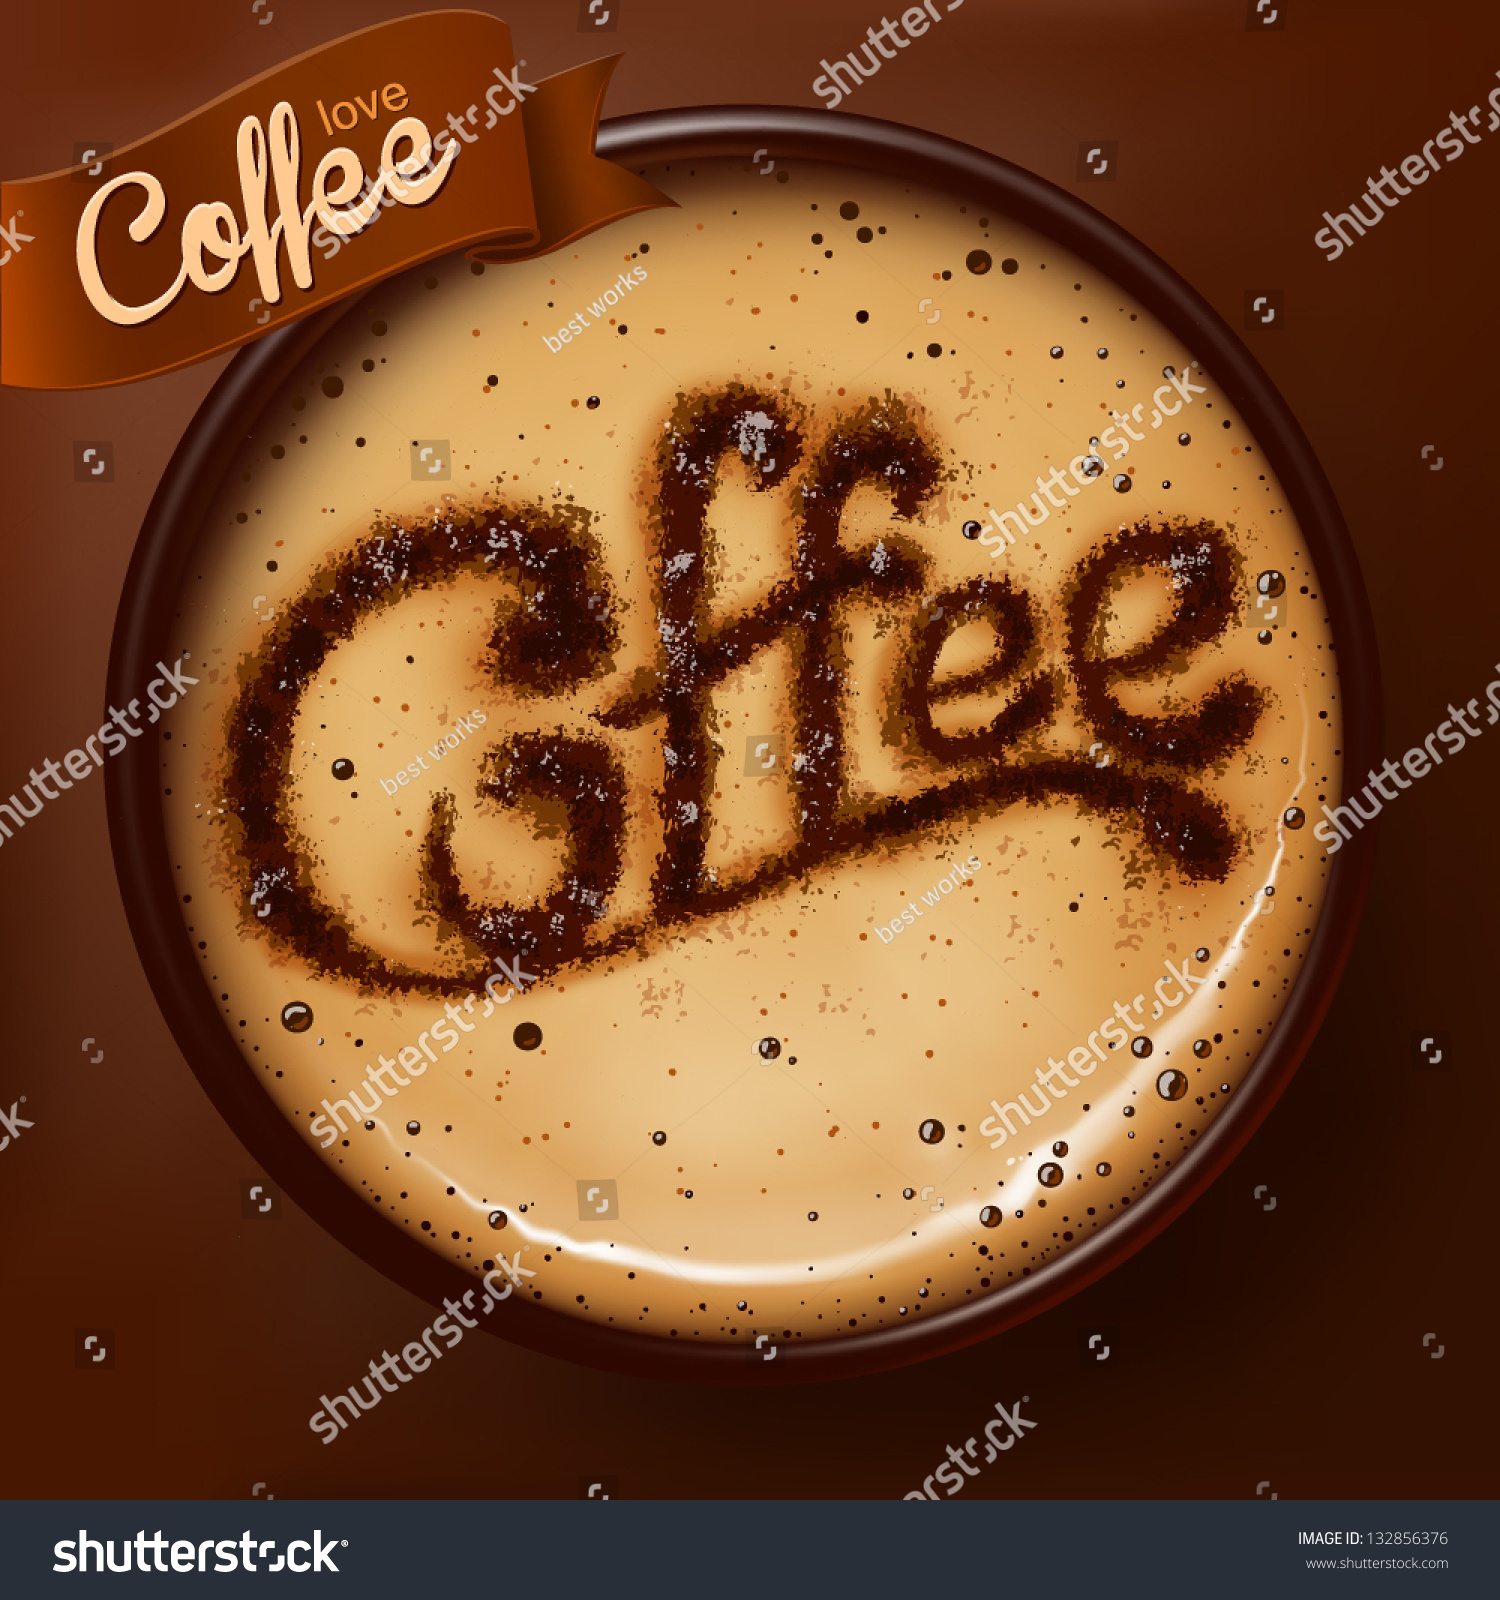 https://image.shutterstock.com/z/stock-vector-poster-with-a-coffee-cup-vector-132856376.jpg